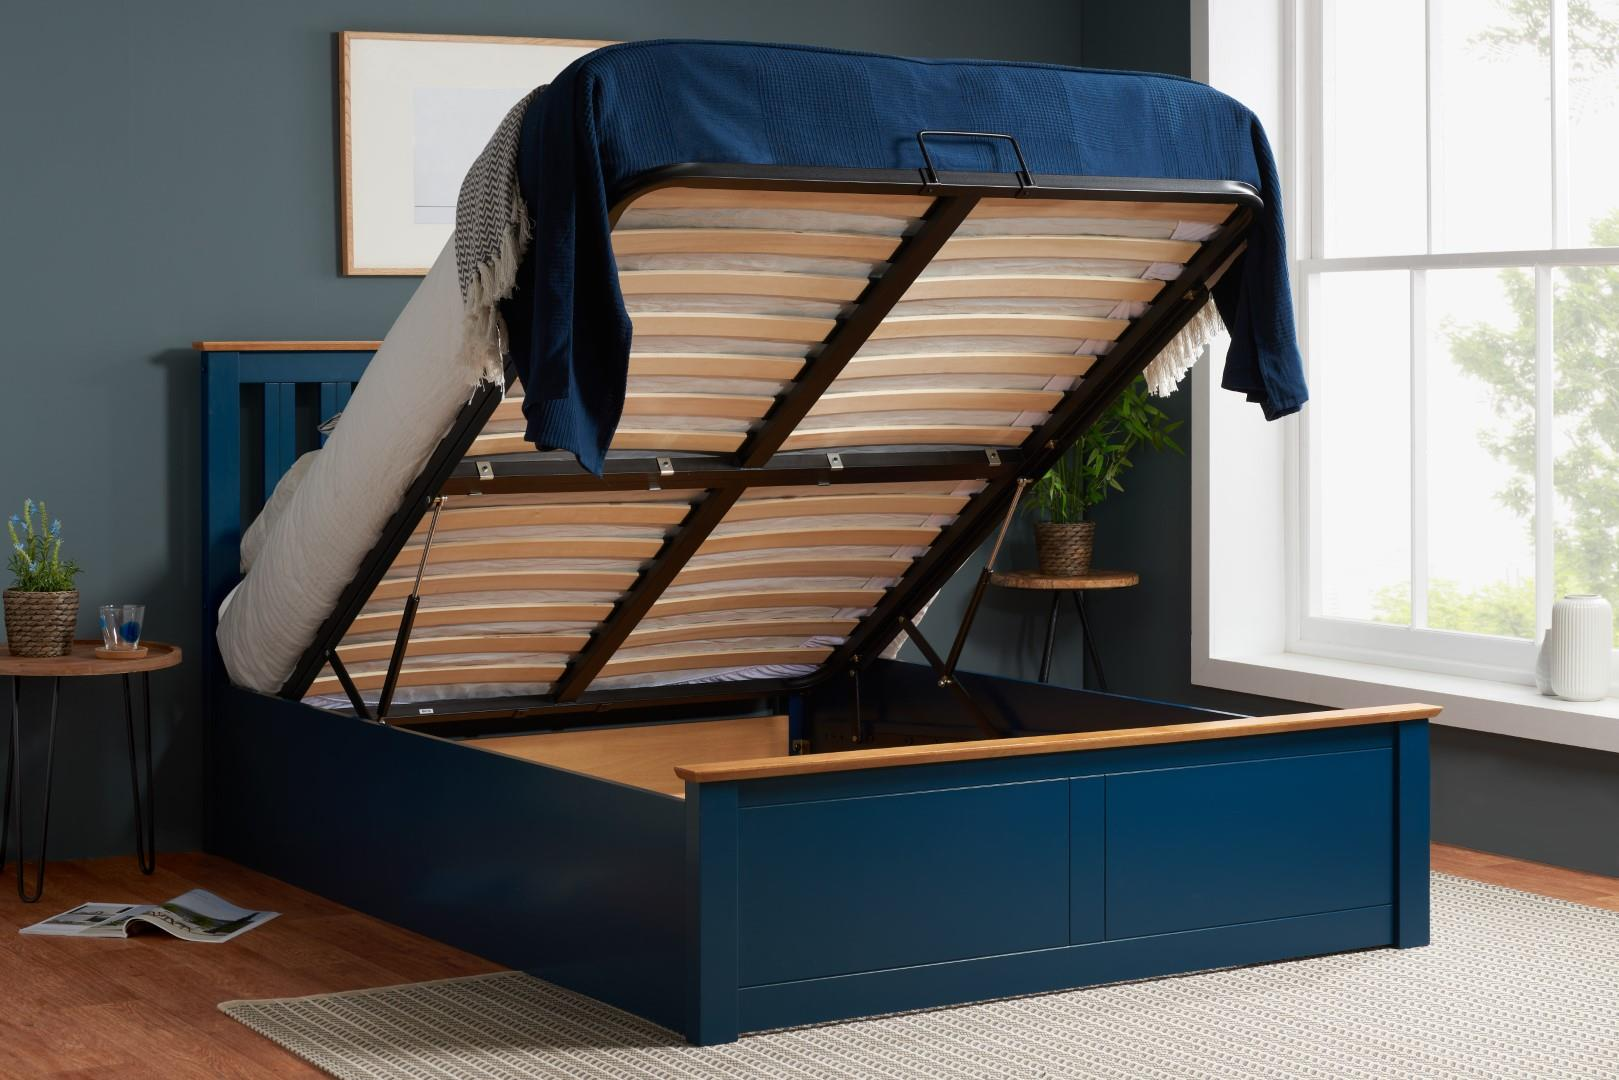 Phoenix Wood Ottoman Bed Frame Storage King Size 5FT Navy Blue Oak Solid